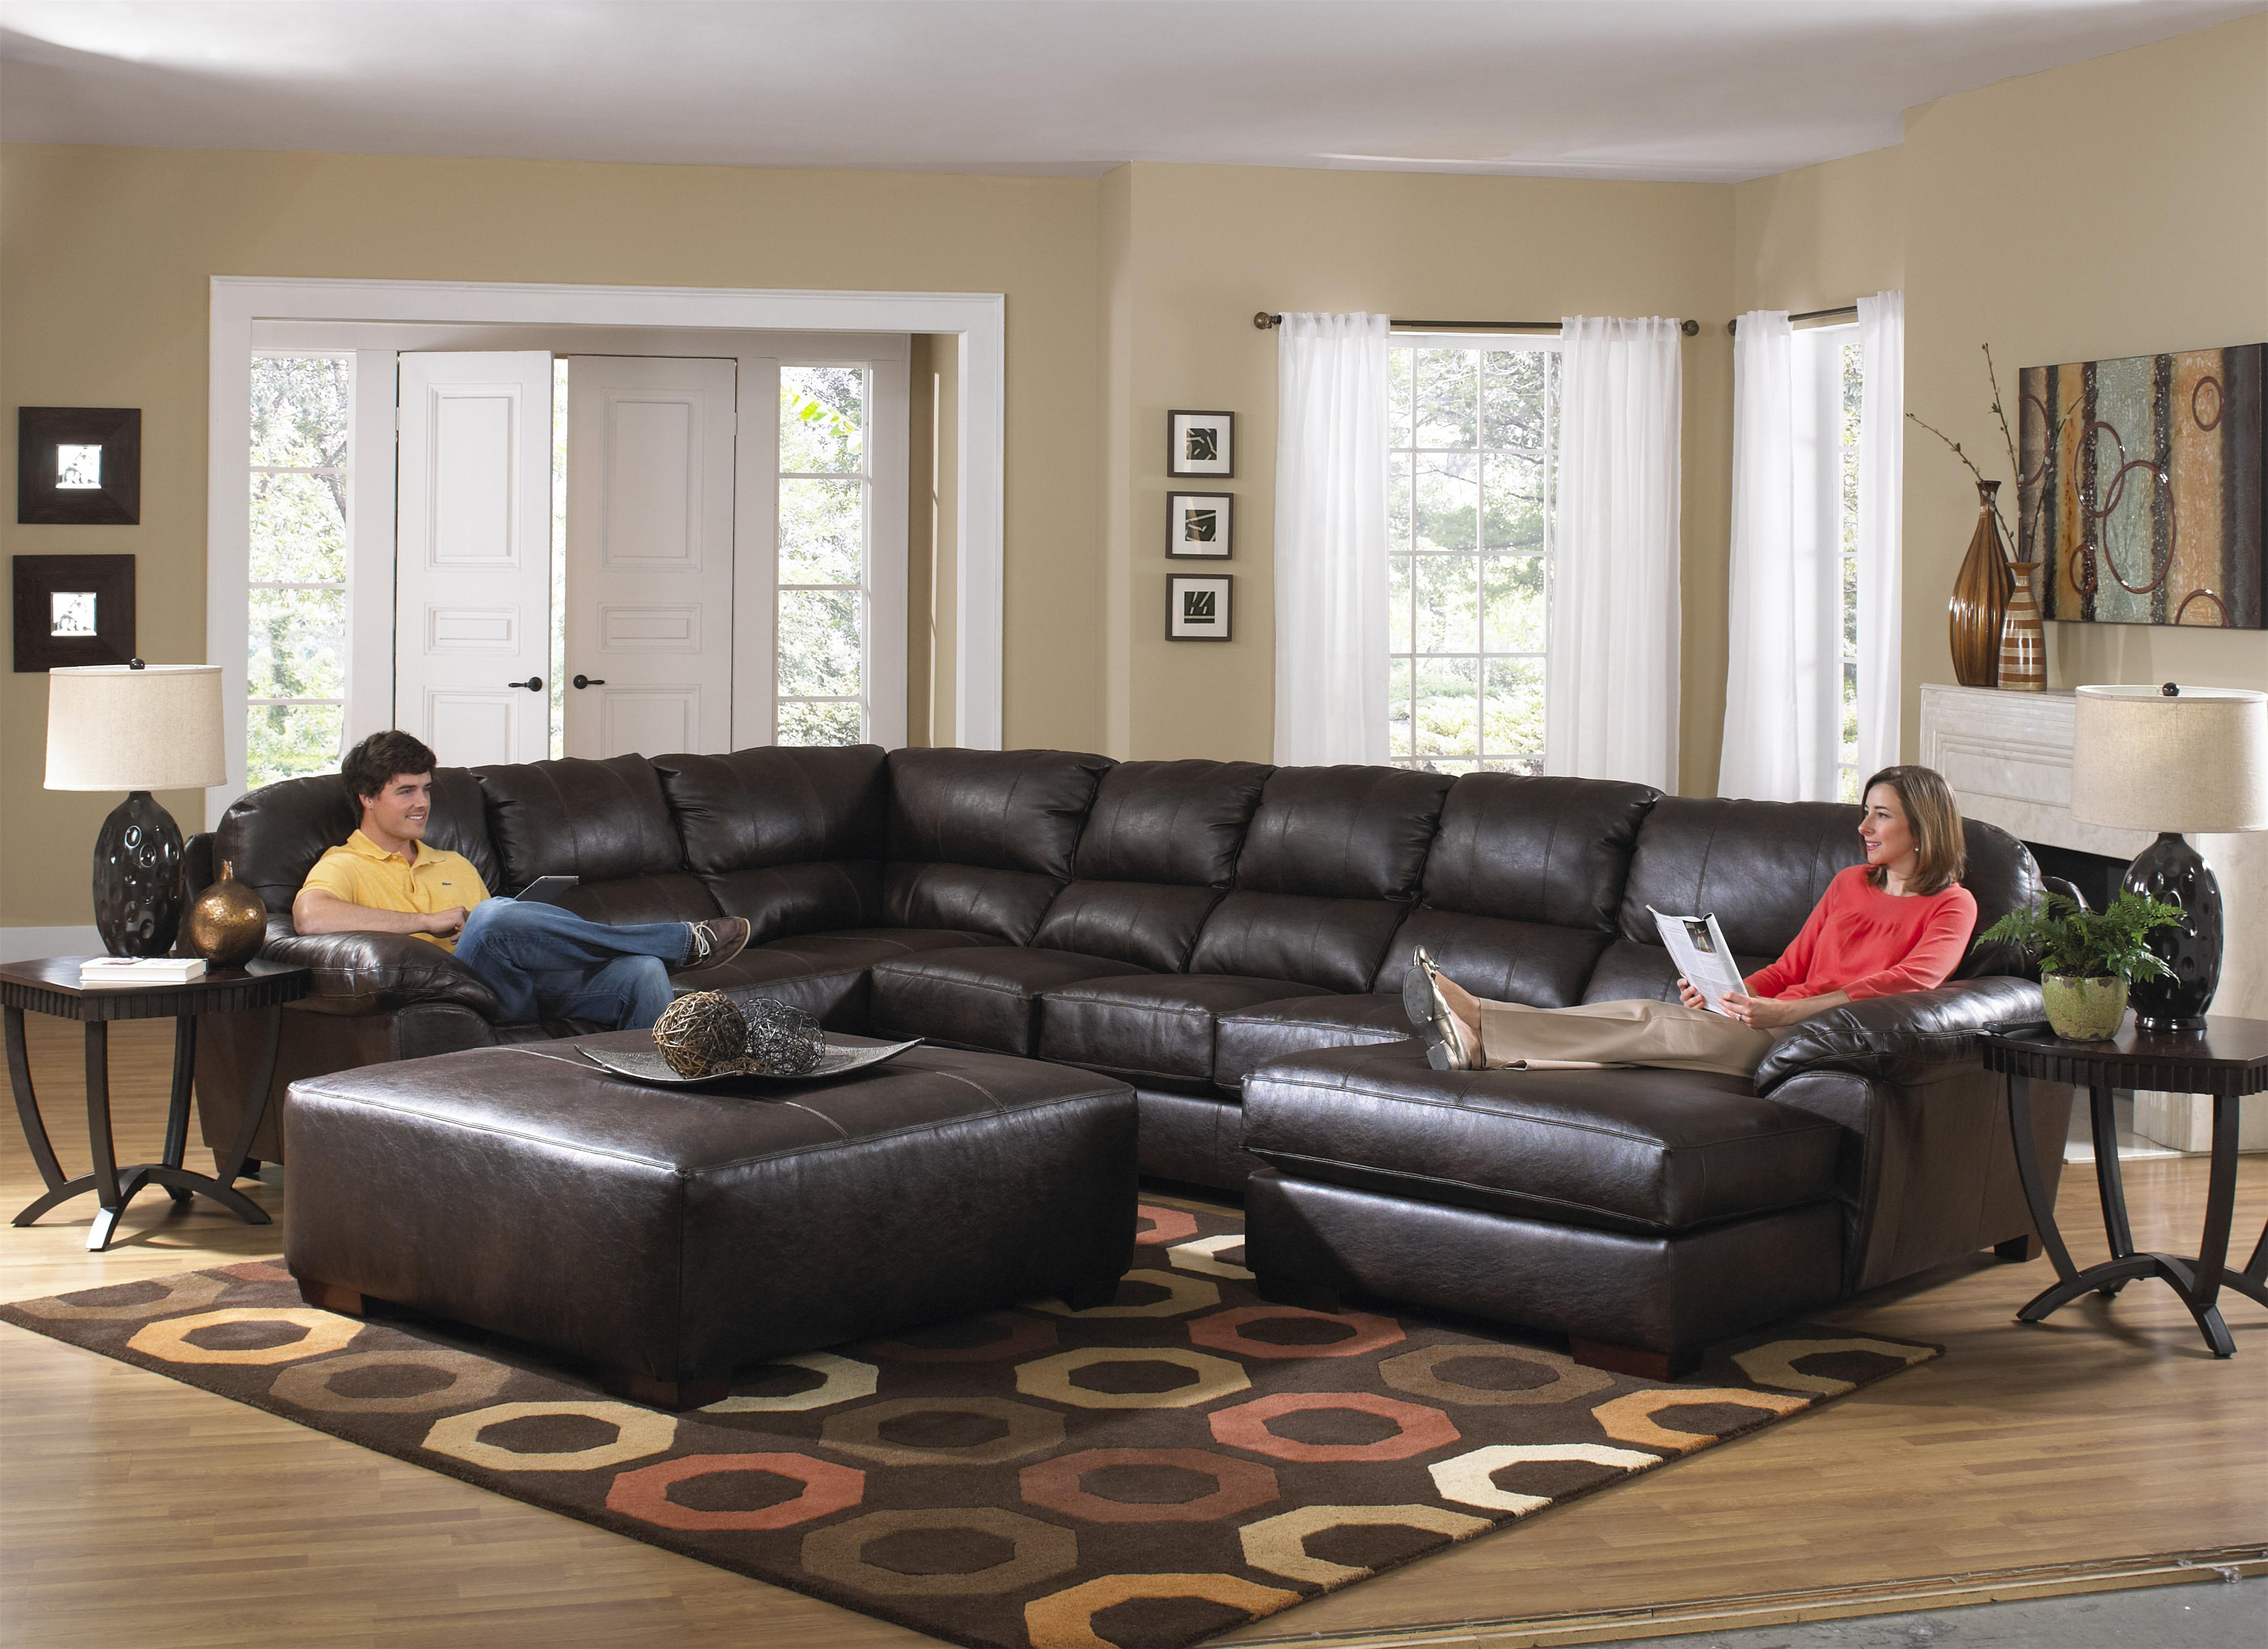 Lawson Extra Large Seven Seat Sectional